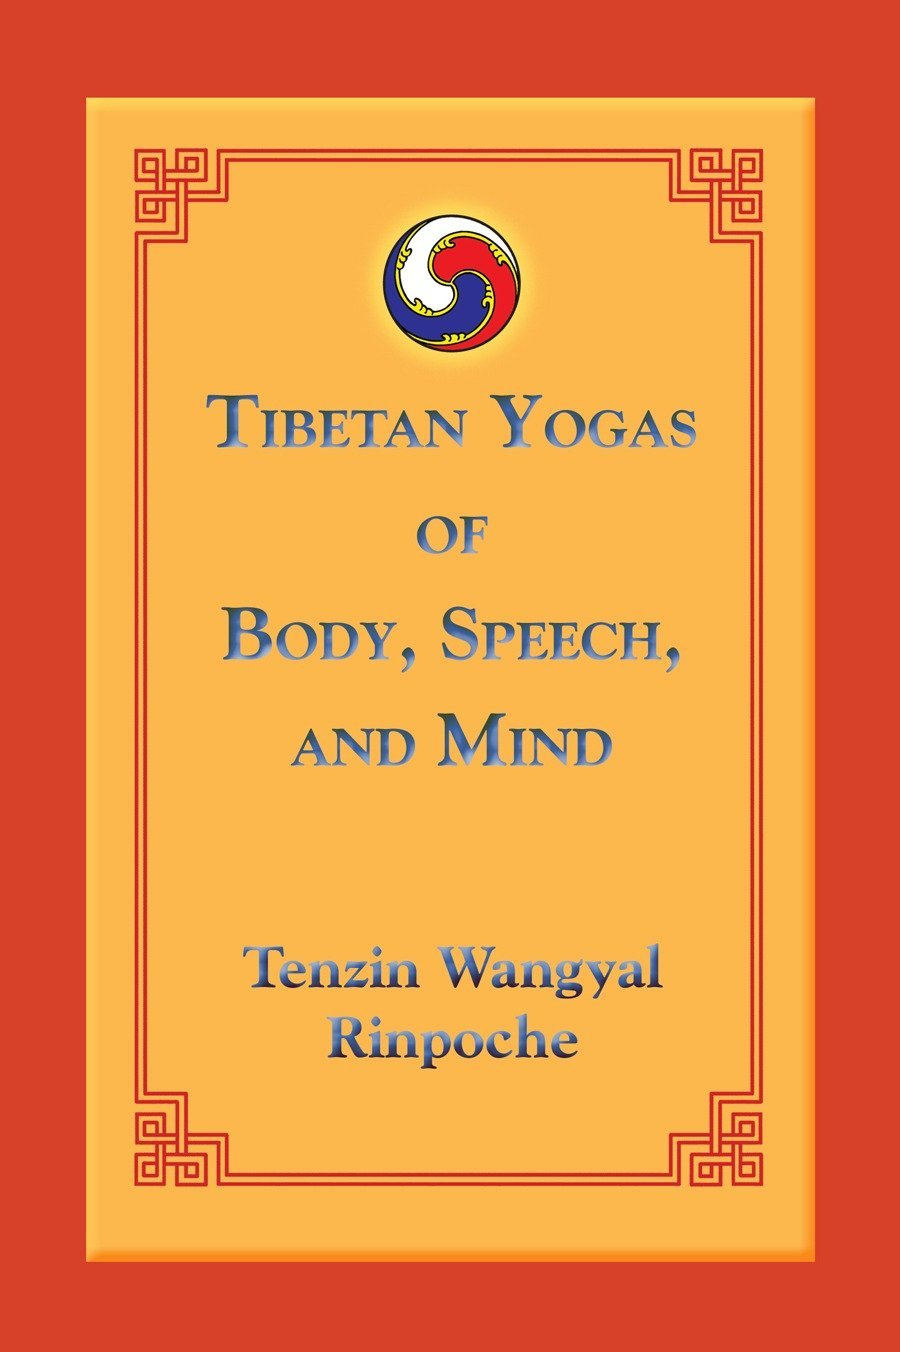 Tibetan Yogas of Body, Speech, and Mind pdf